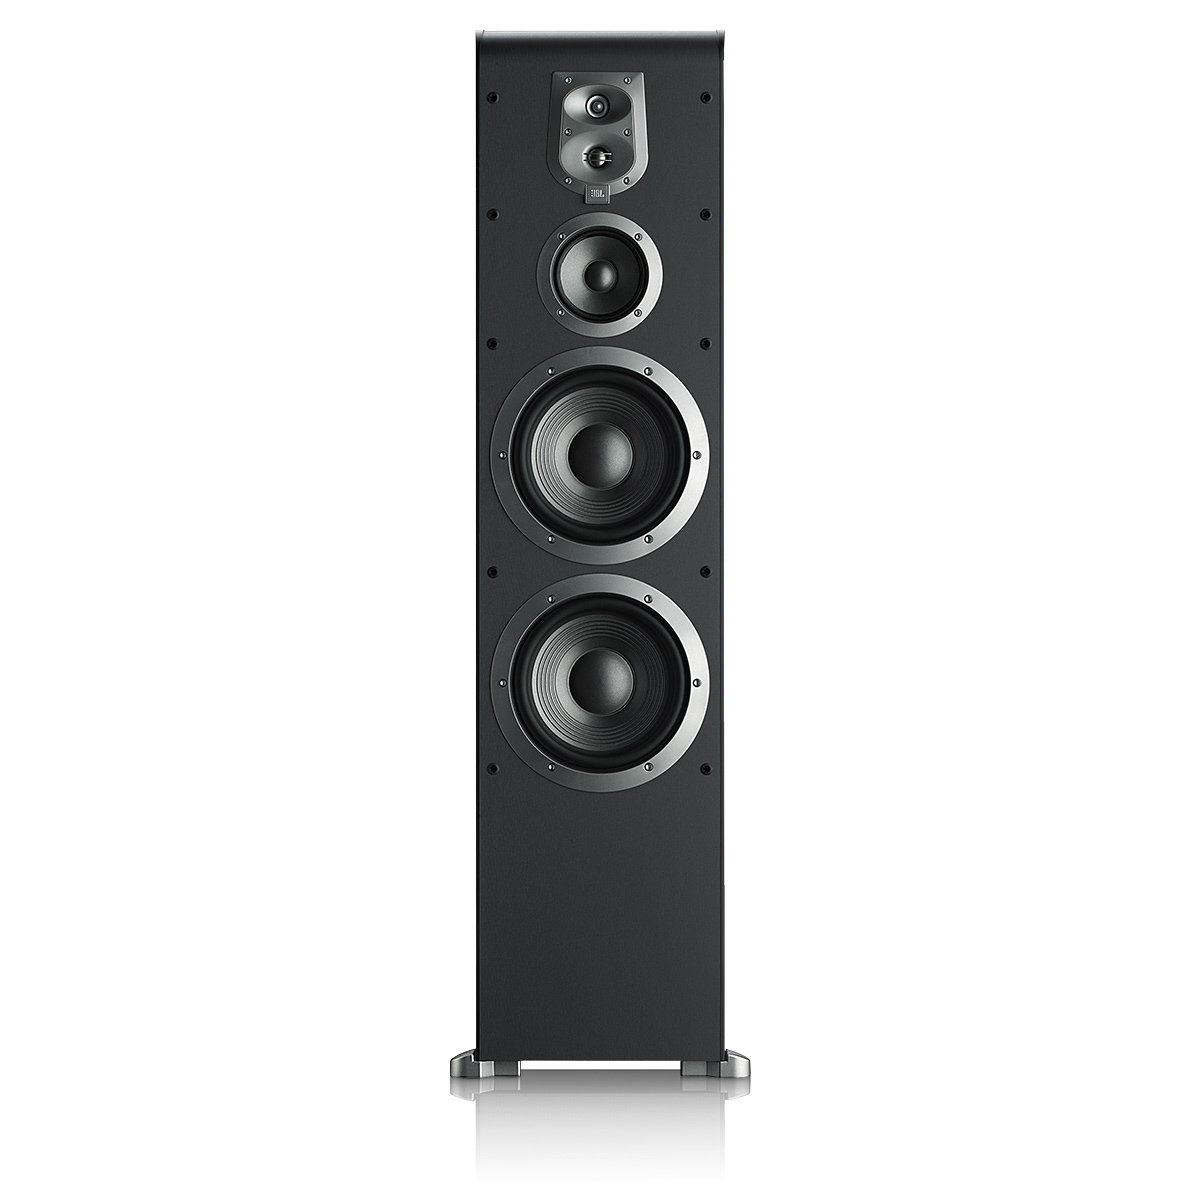 B00166VDK8.ES90blk_NOGRL_LRG amazon com jbl es90bk 4 way, dual 8 inch floorstanding speaker  at honlapkeszites.co